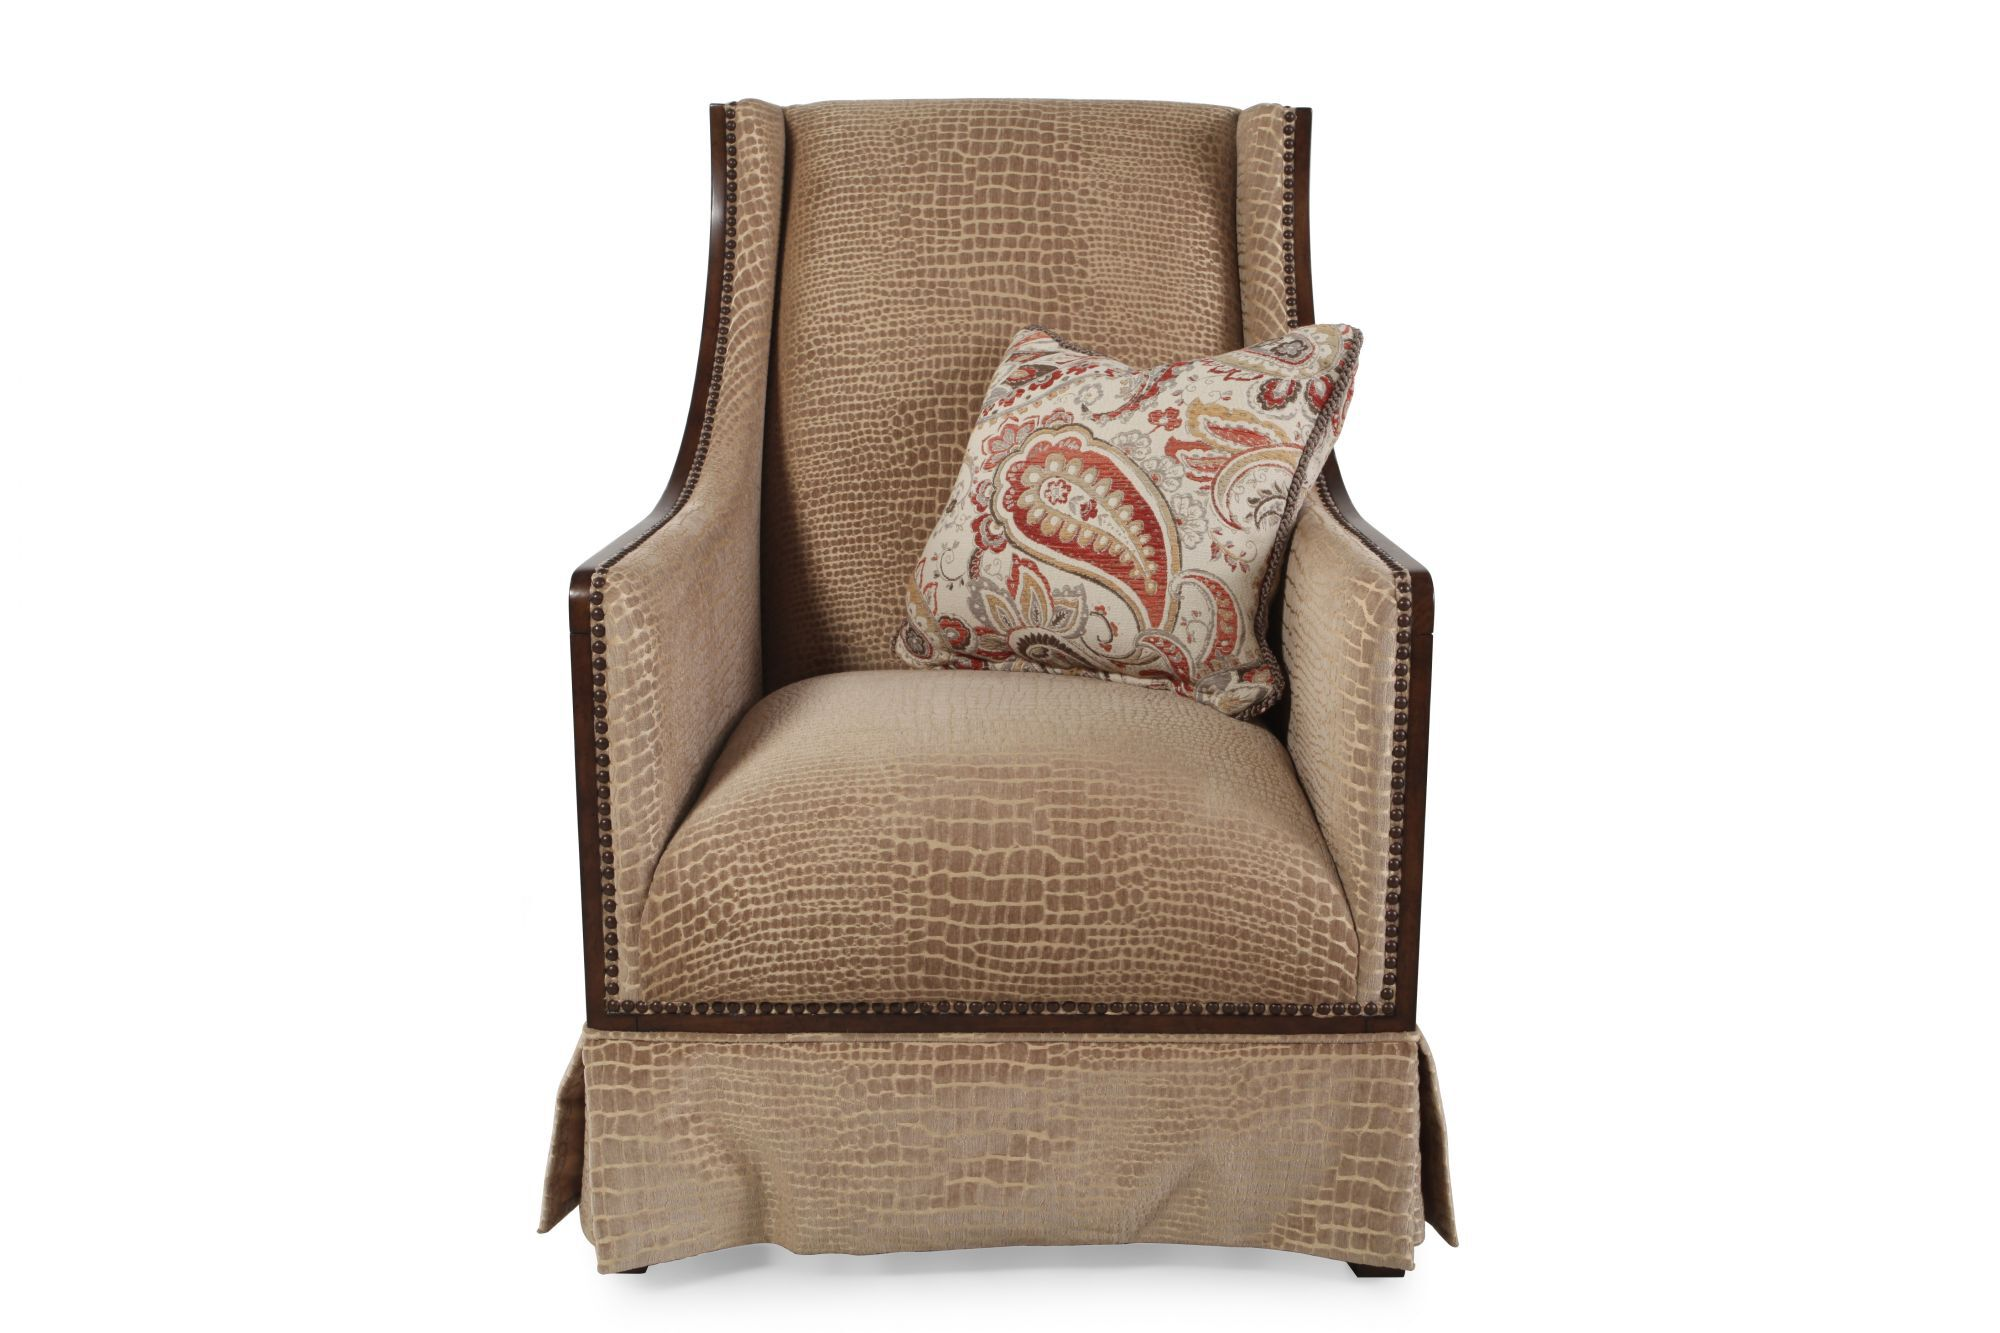 Printed Chair Croc Printed Accent Chair In Toffee Mathis Brothers